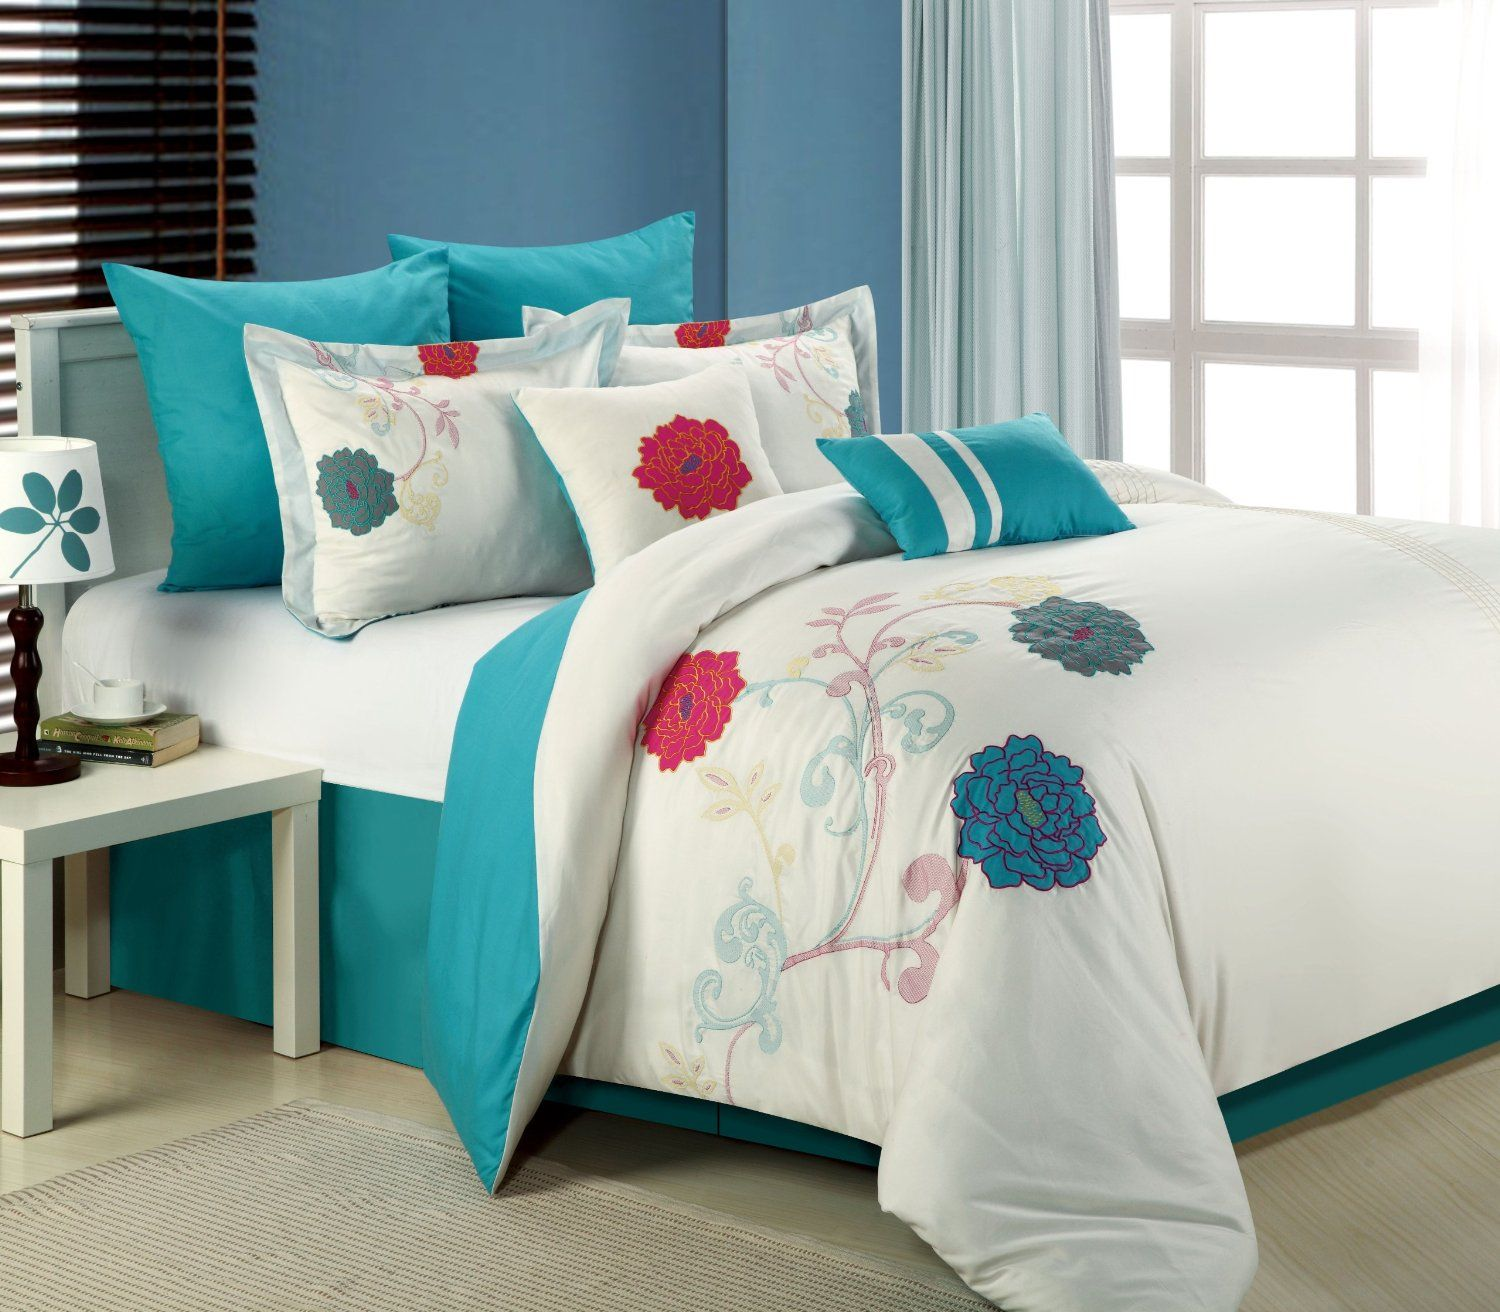 fetching gray nursery orange dark ideas bedrooms comely highest coral teal bed bedding paint the grey winsome decor pawprints gallery bedroom aqua quality yellow on master baby and purple speckled about